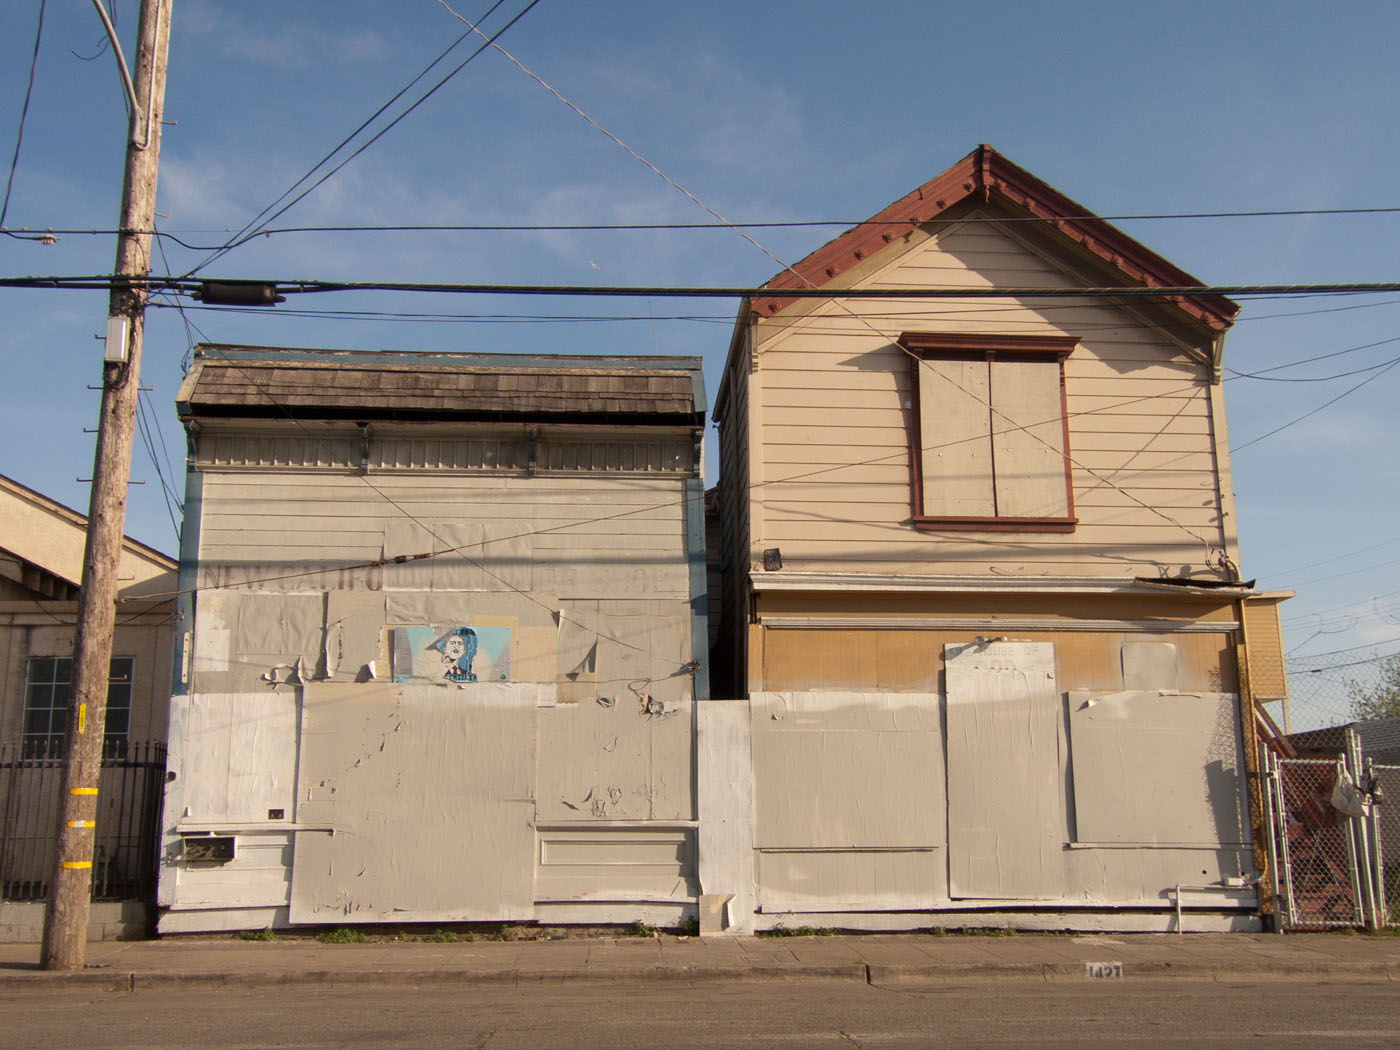 The New California Barber Shop and the House Of God Spiritual Temple, Dogtown, Oakland, mid 2009.